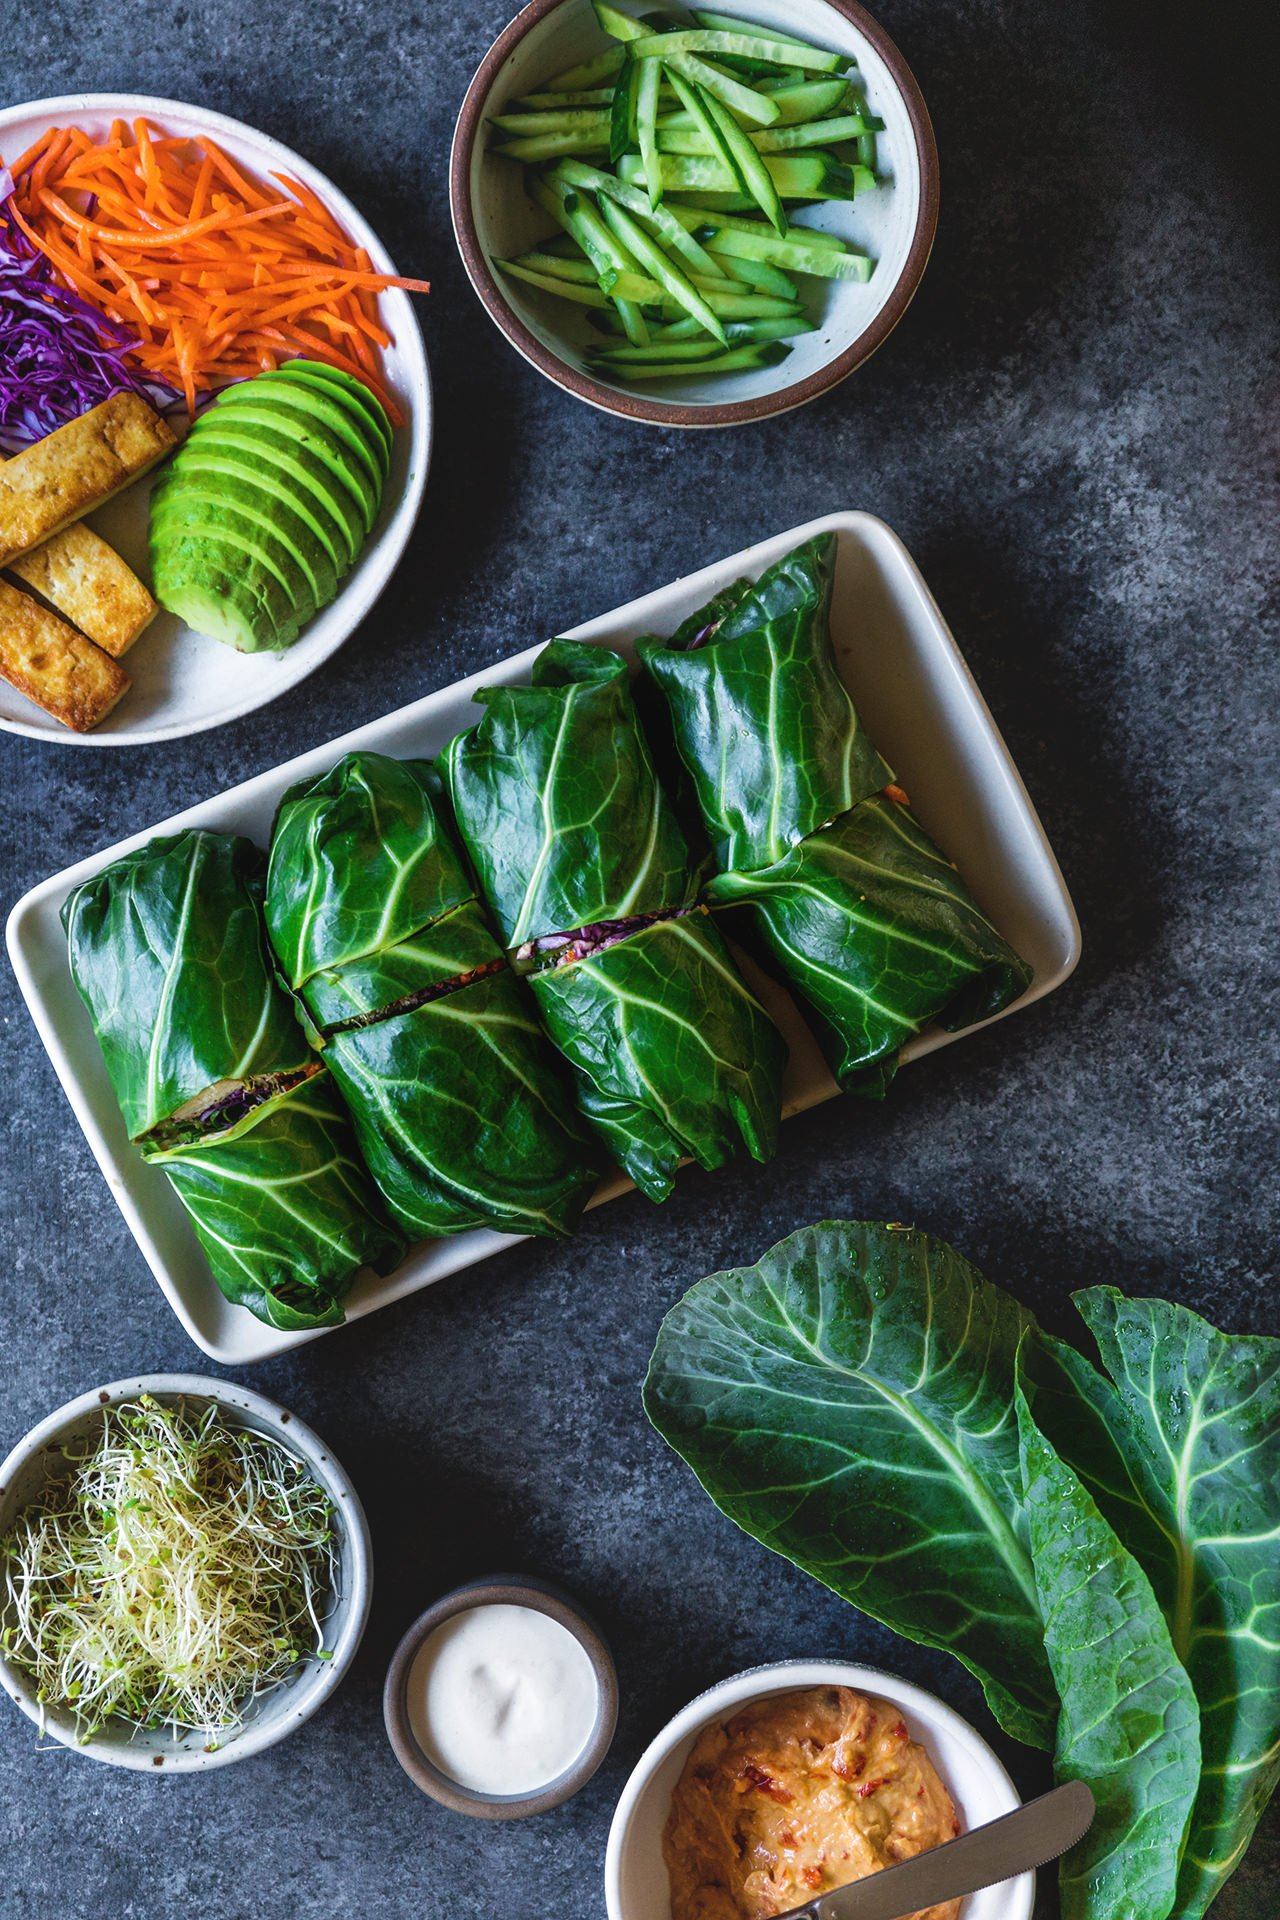 Collard Green Wraps | HonestlyYUM (honestlyyum.com)